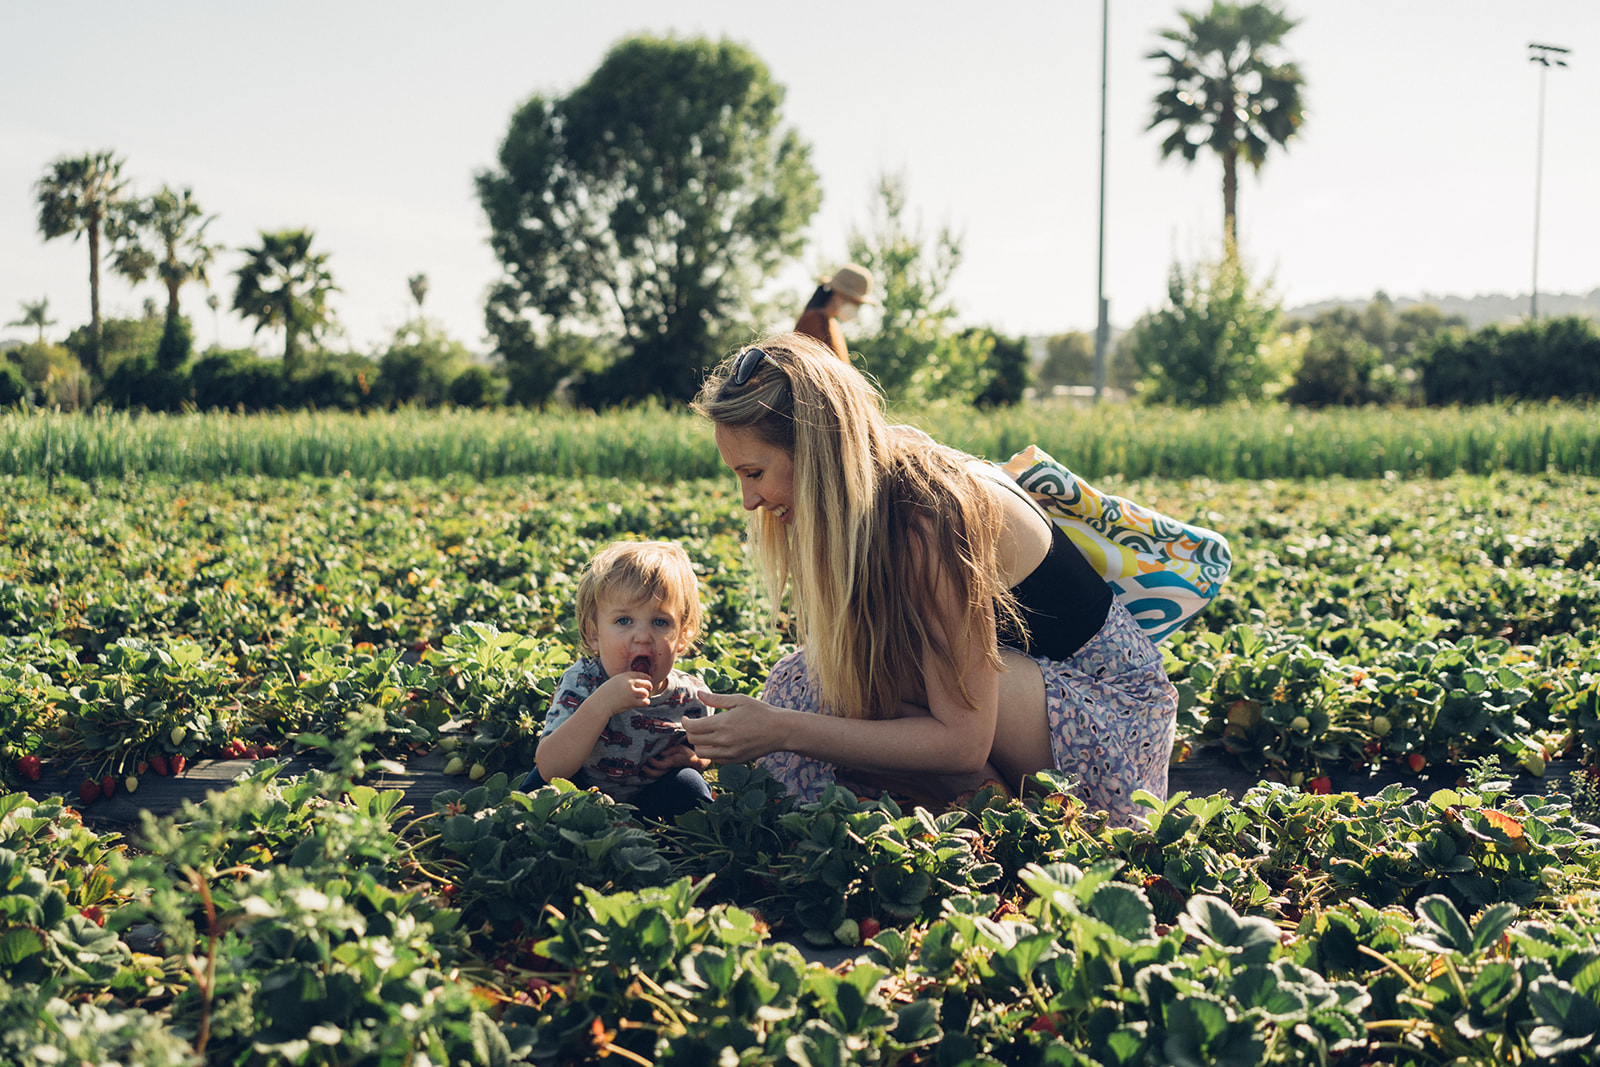 Mother and child sitting in the middle of strawberry field.